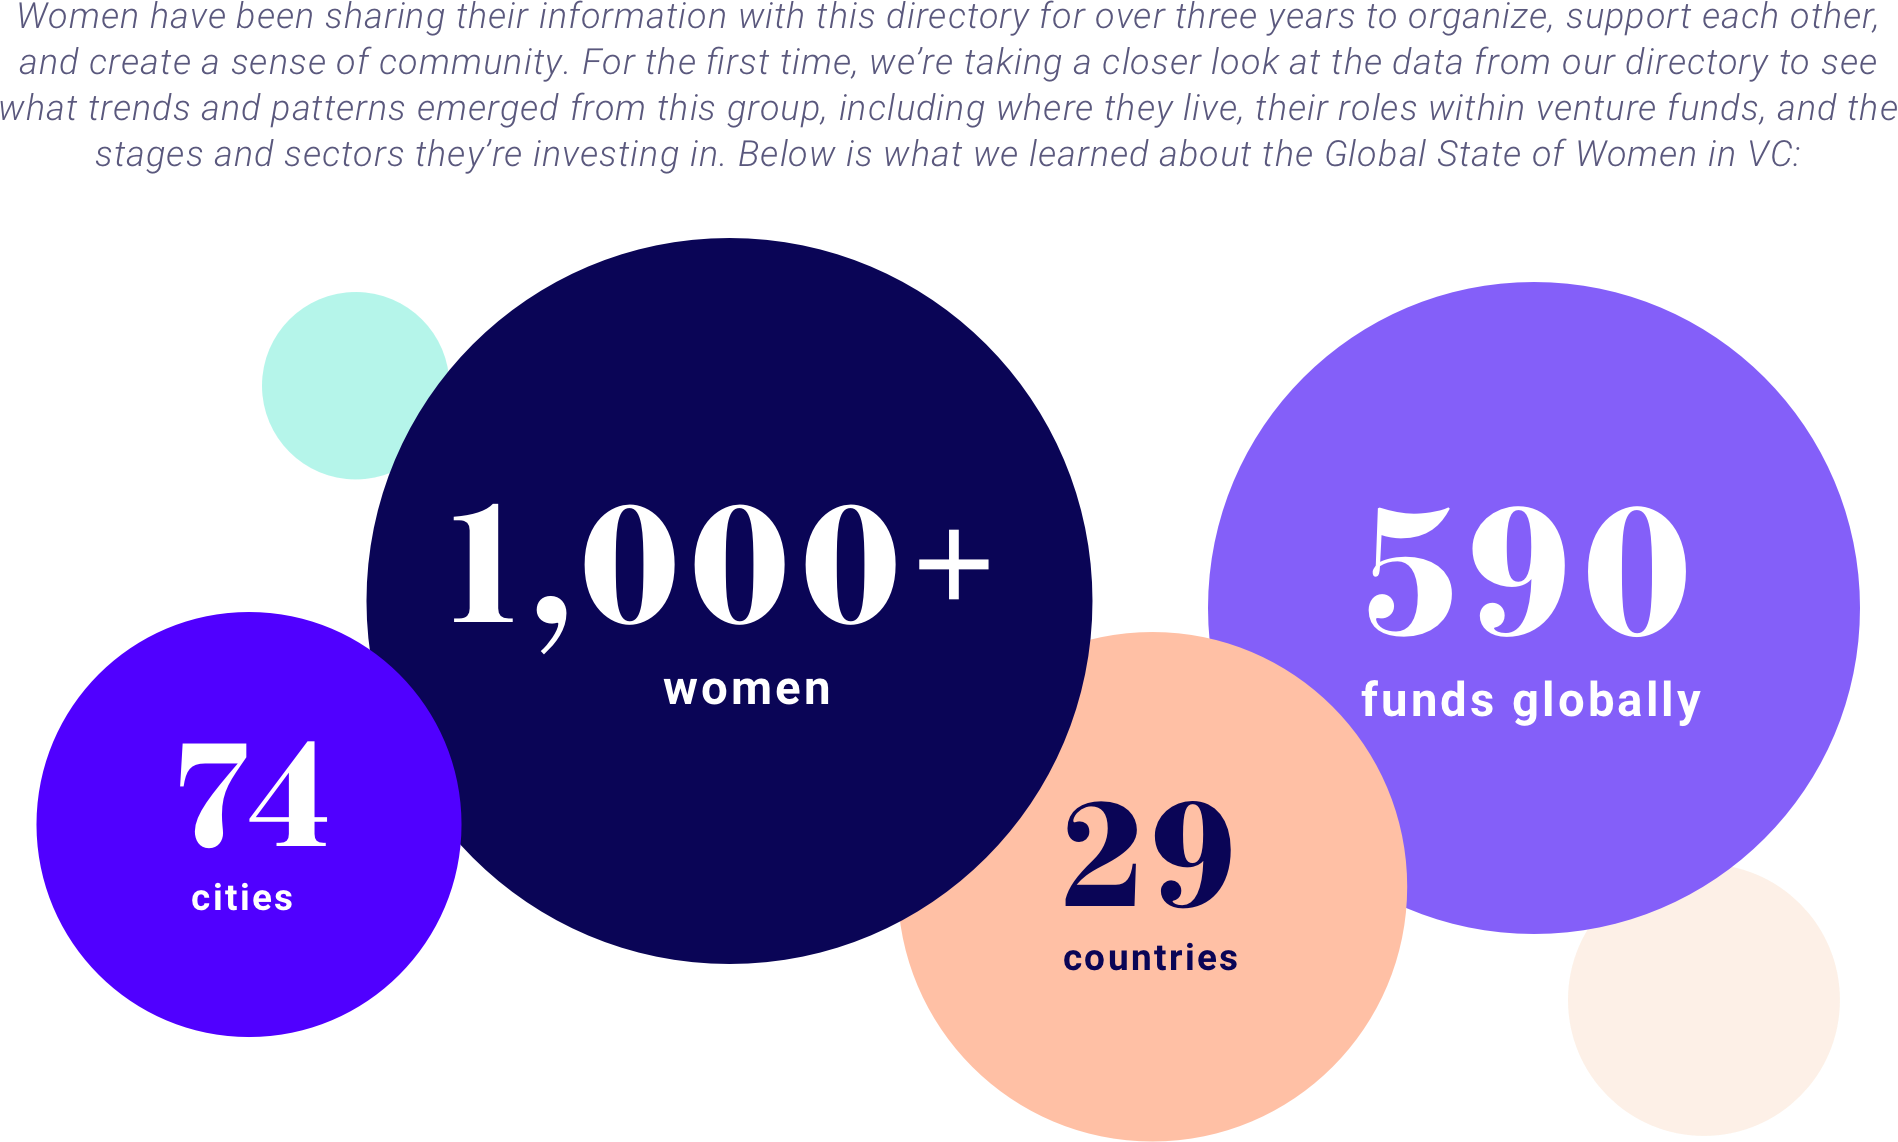 Data from our Global Women in VC Directory